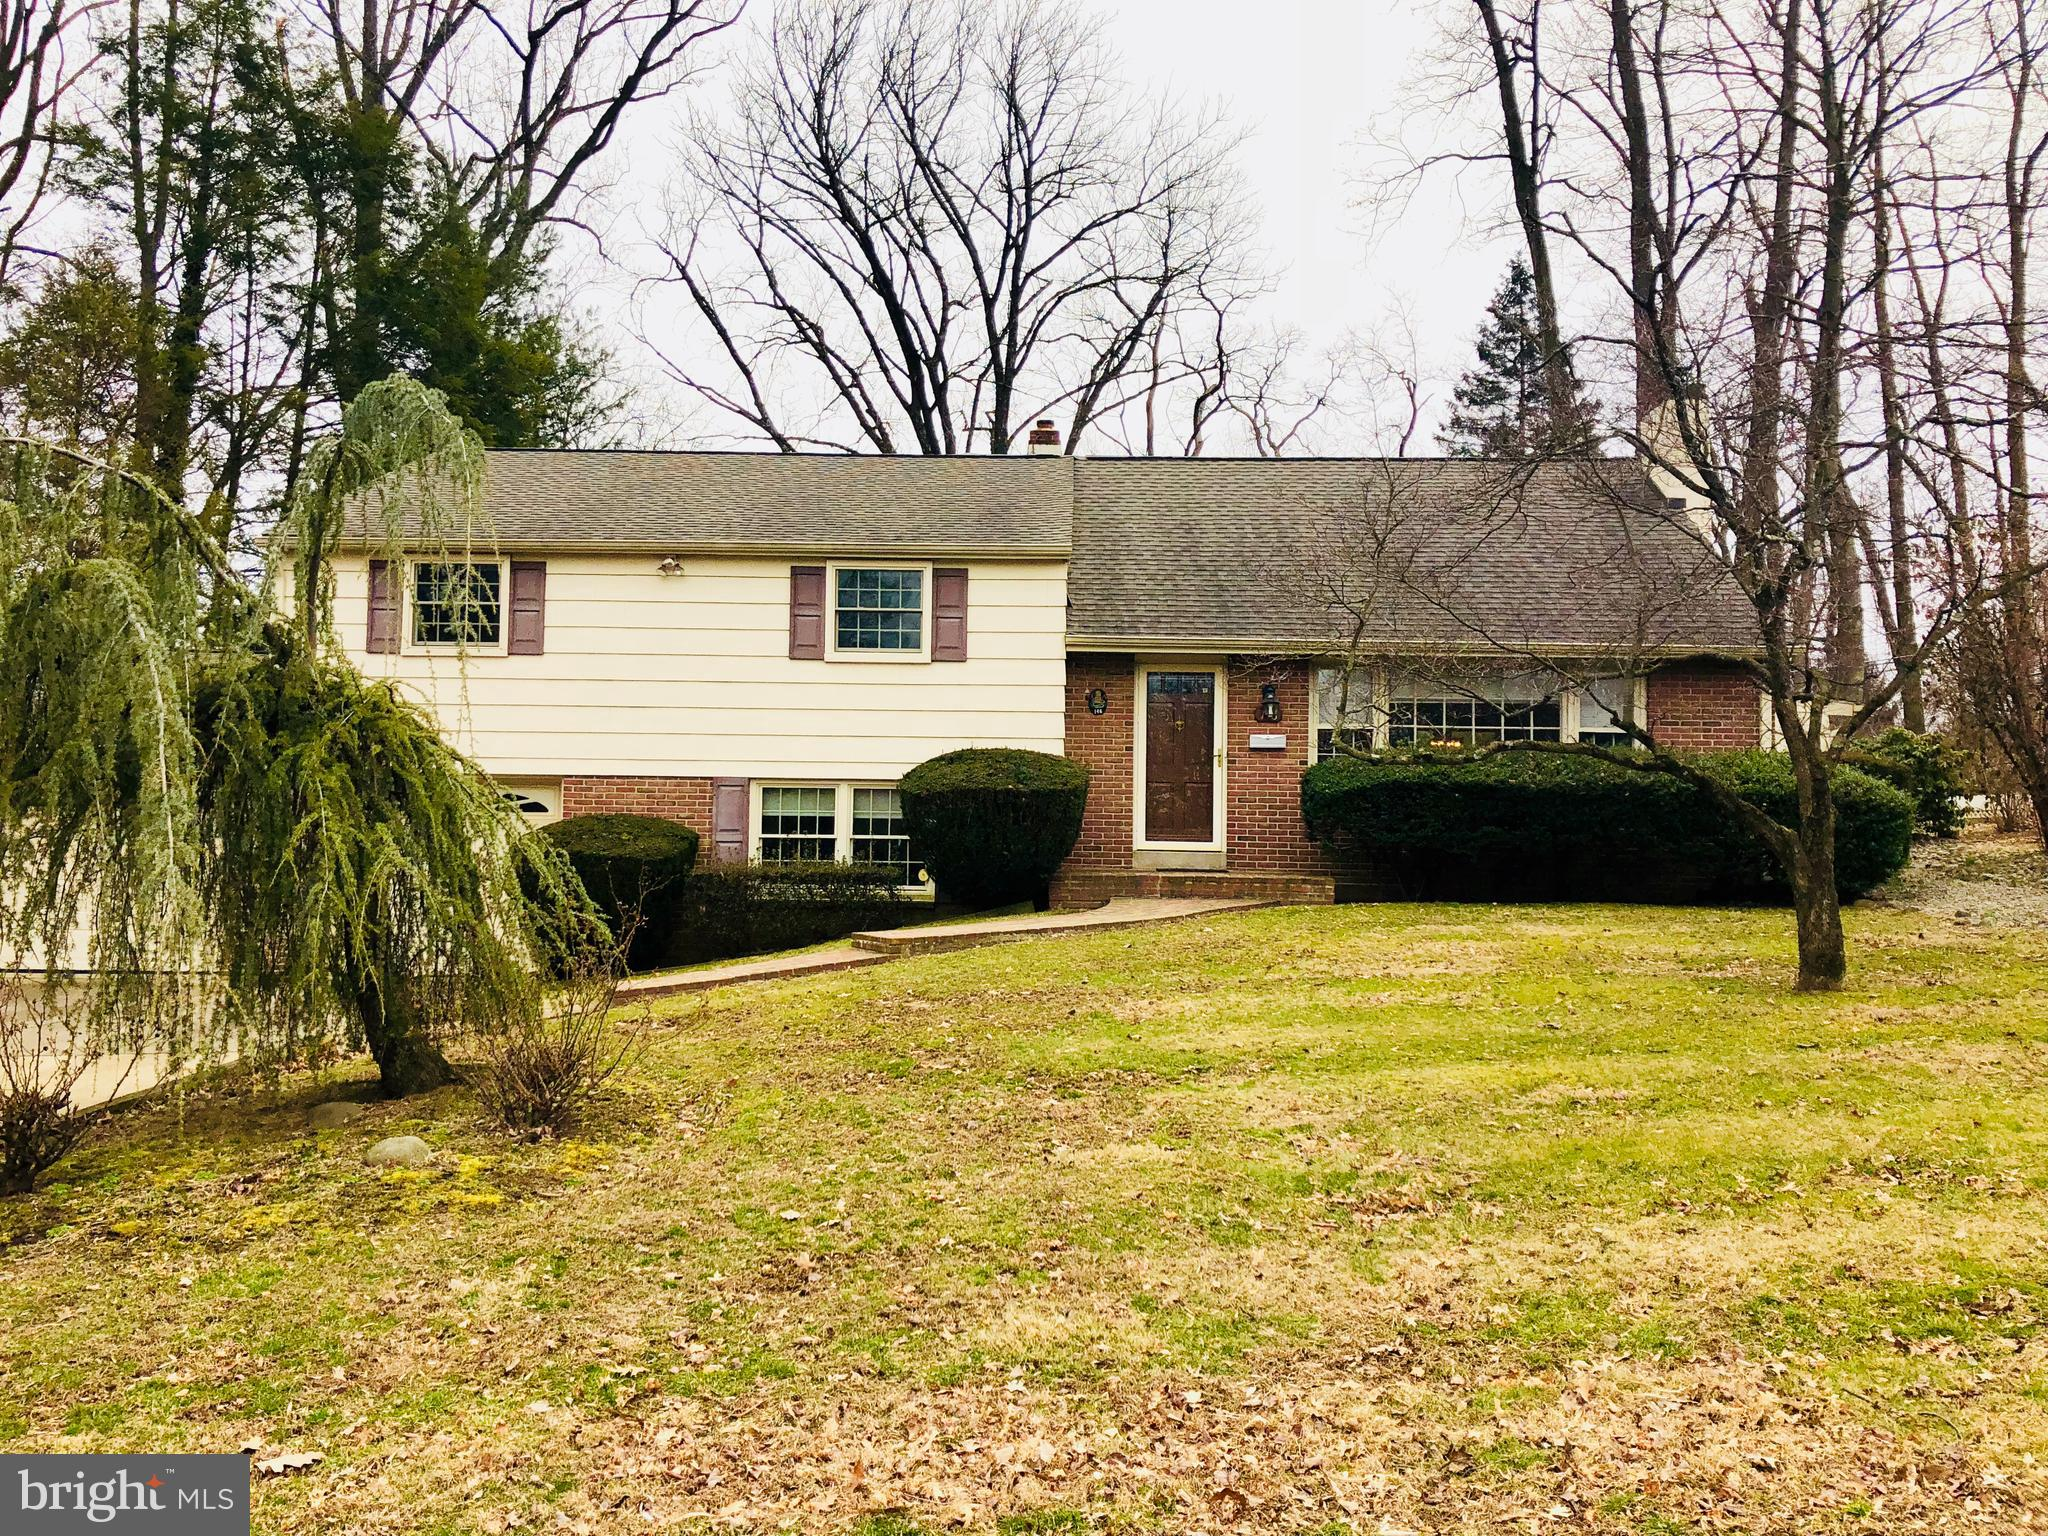 146 GREYHORSE ROAD, WILLOW GROVE, PA 19090